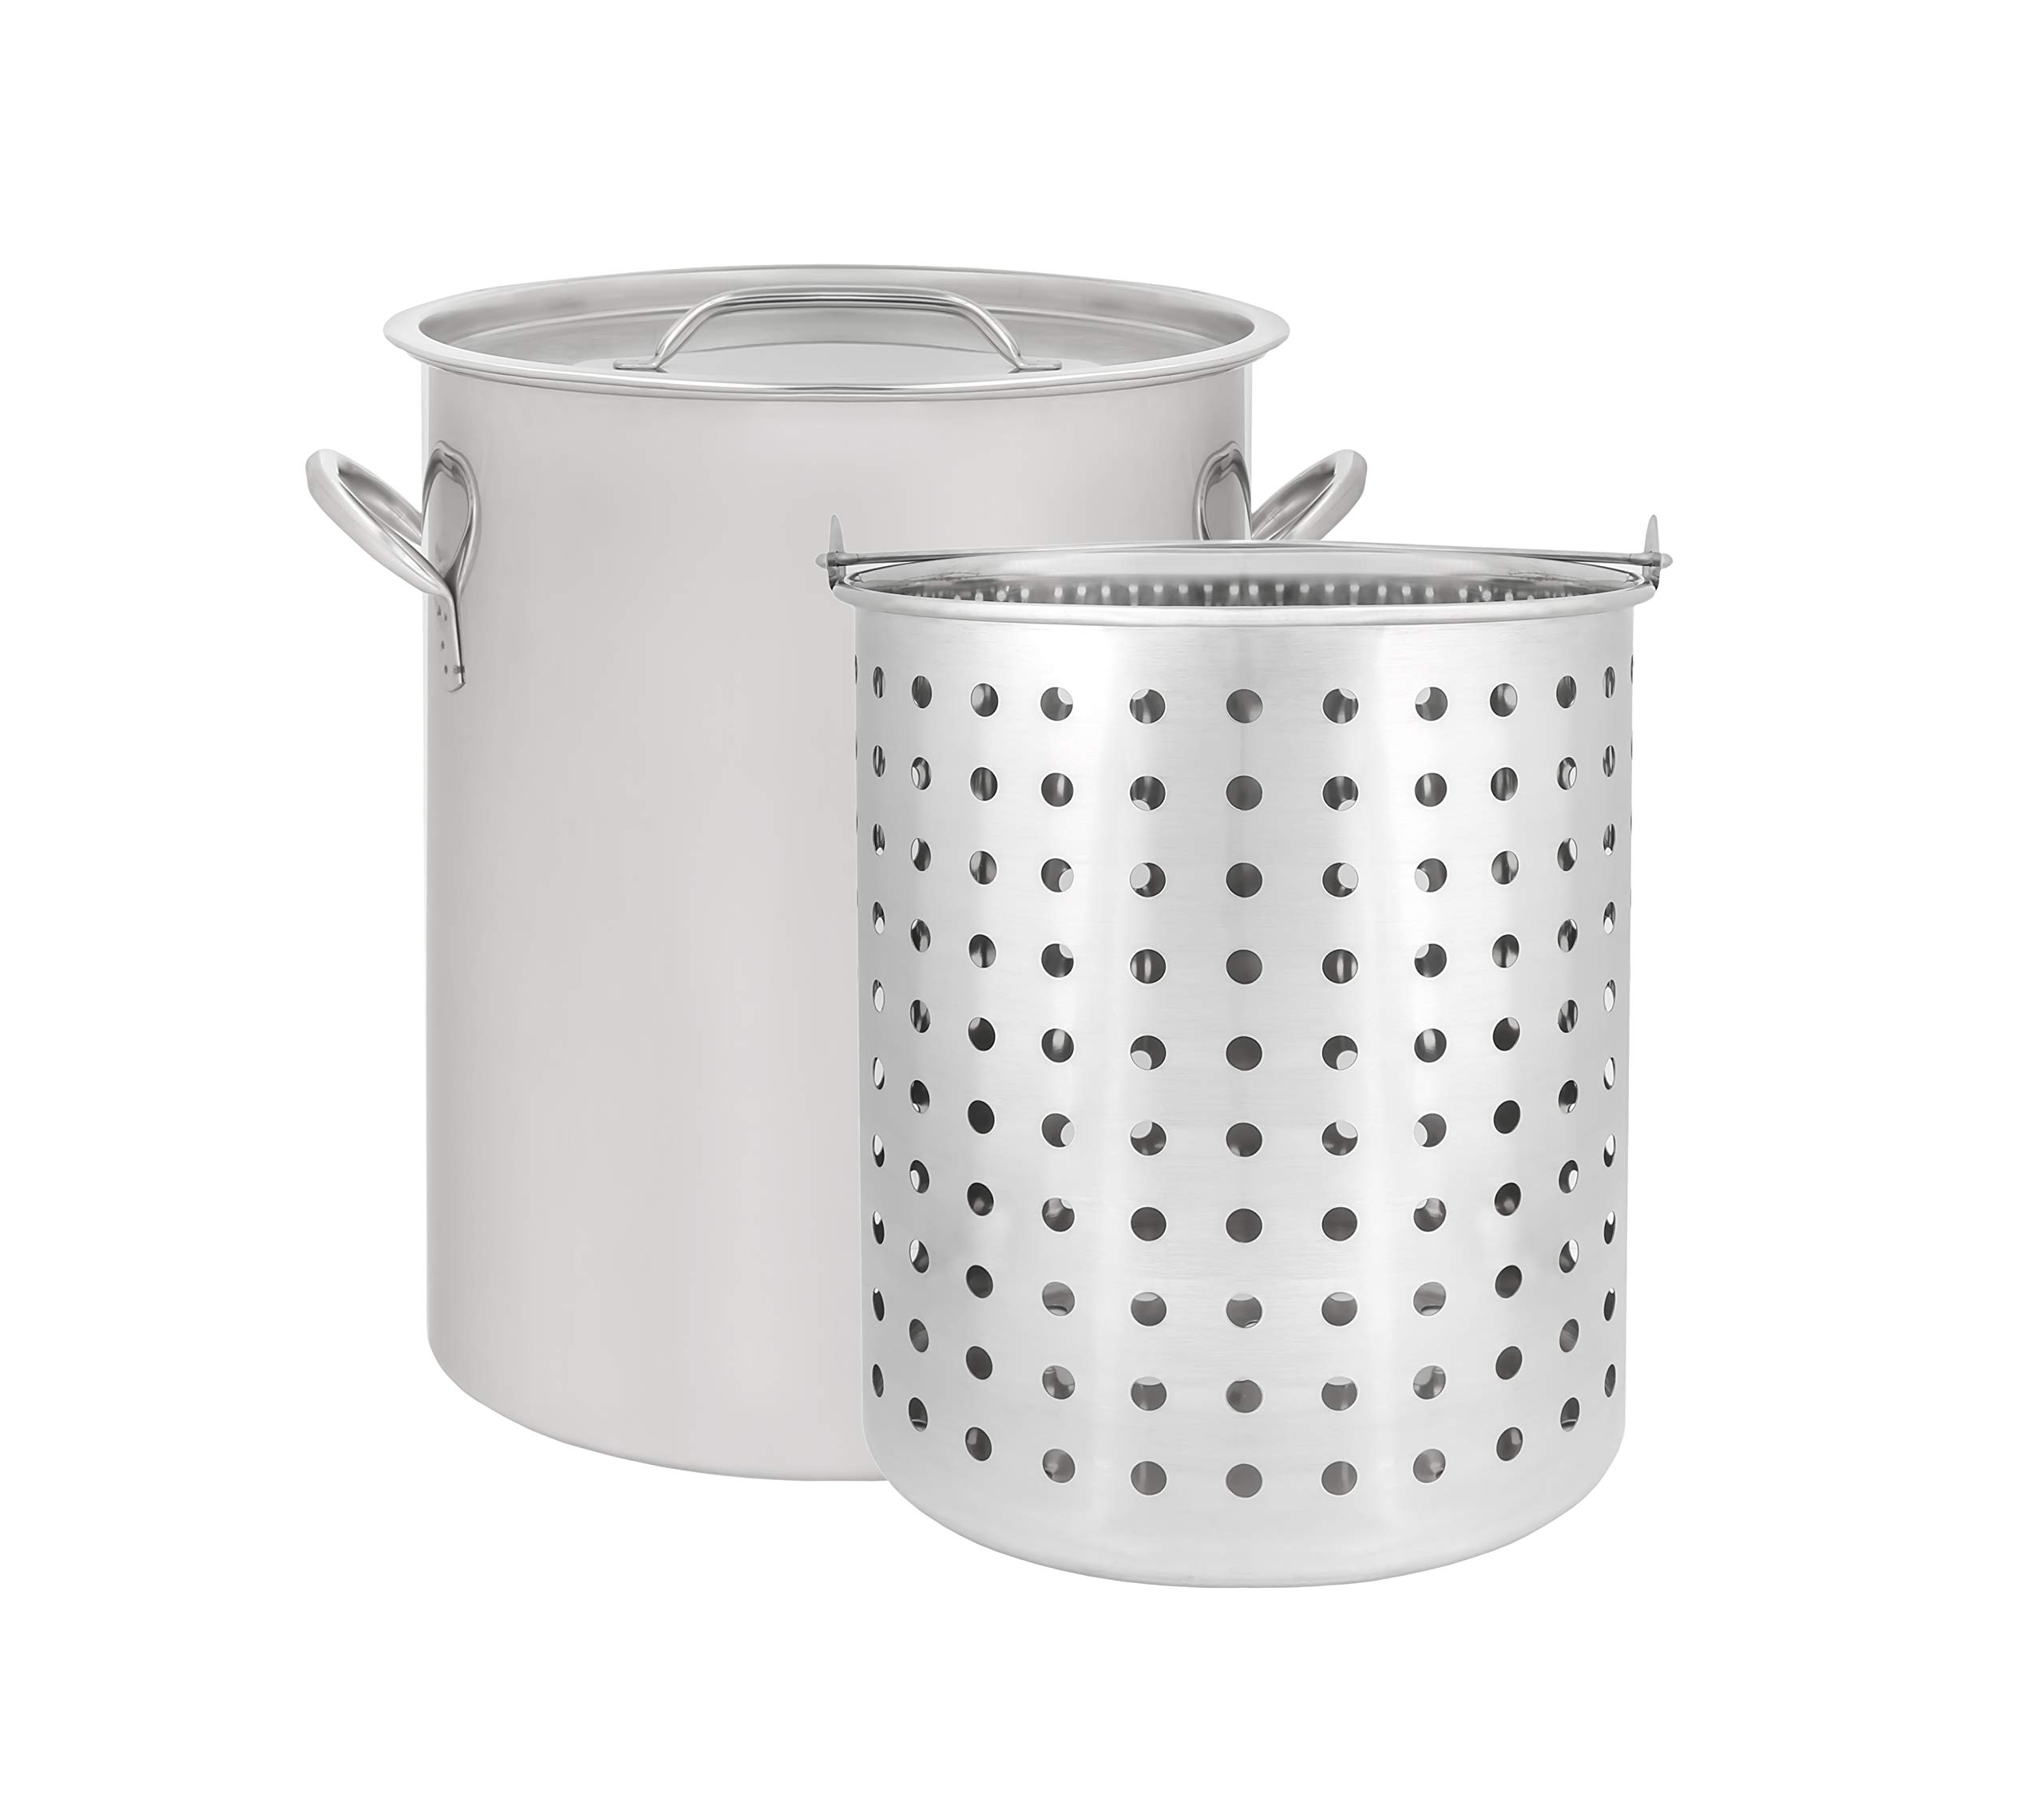 CONCORD 42 QT Stainless Steel Stock Pot w/Basket. Heavy Kettle. Cookware for Boiling (42) by Concord Cookware